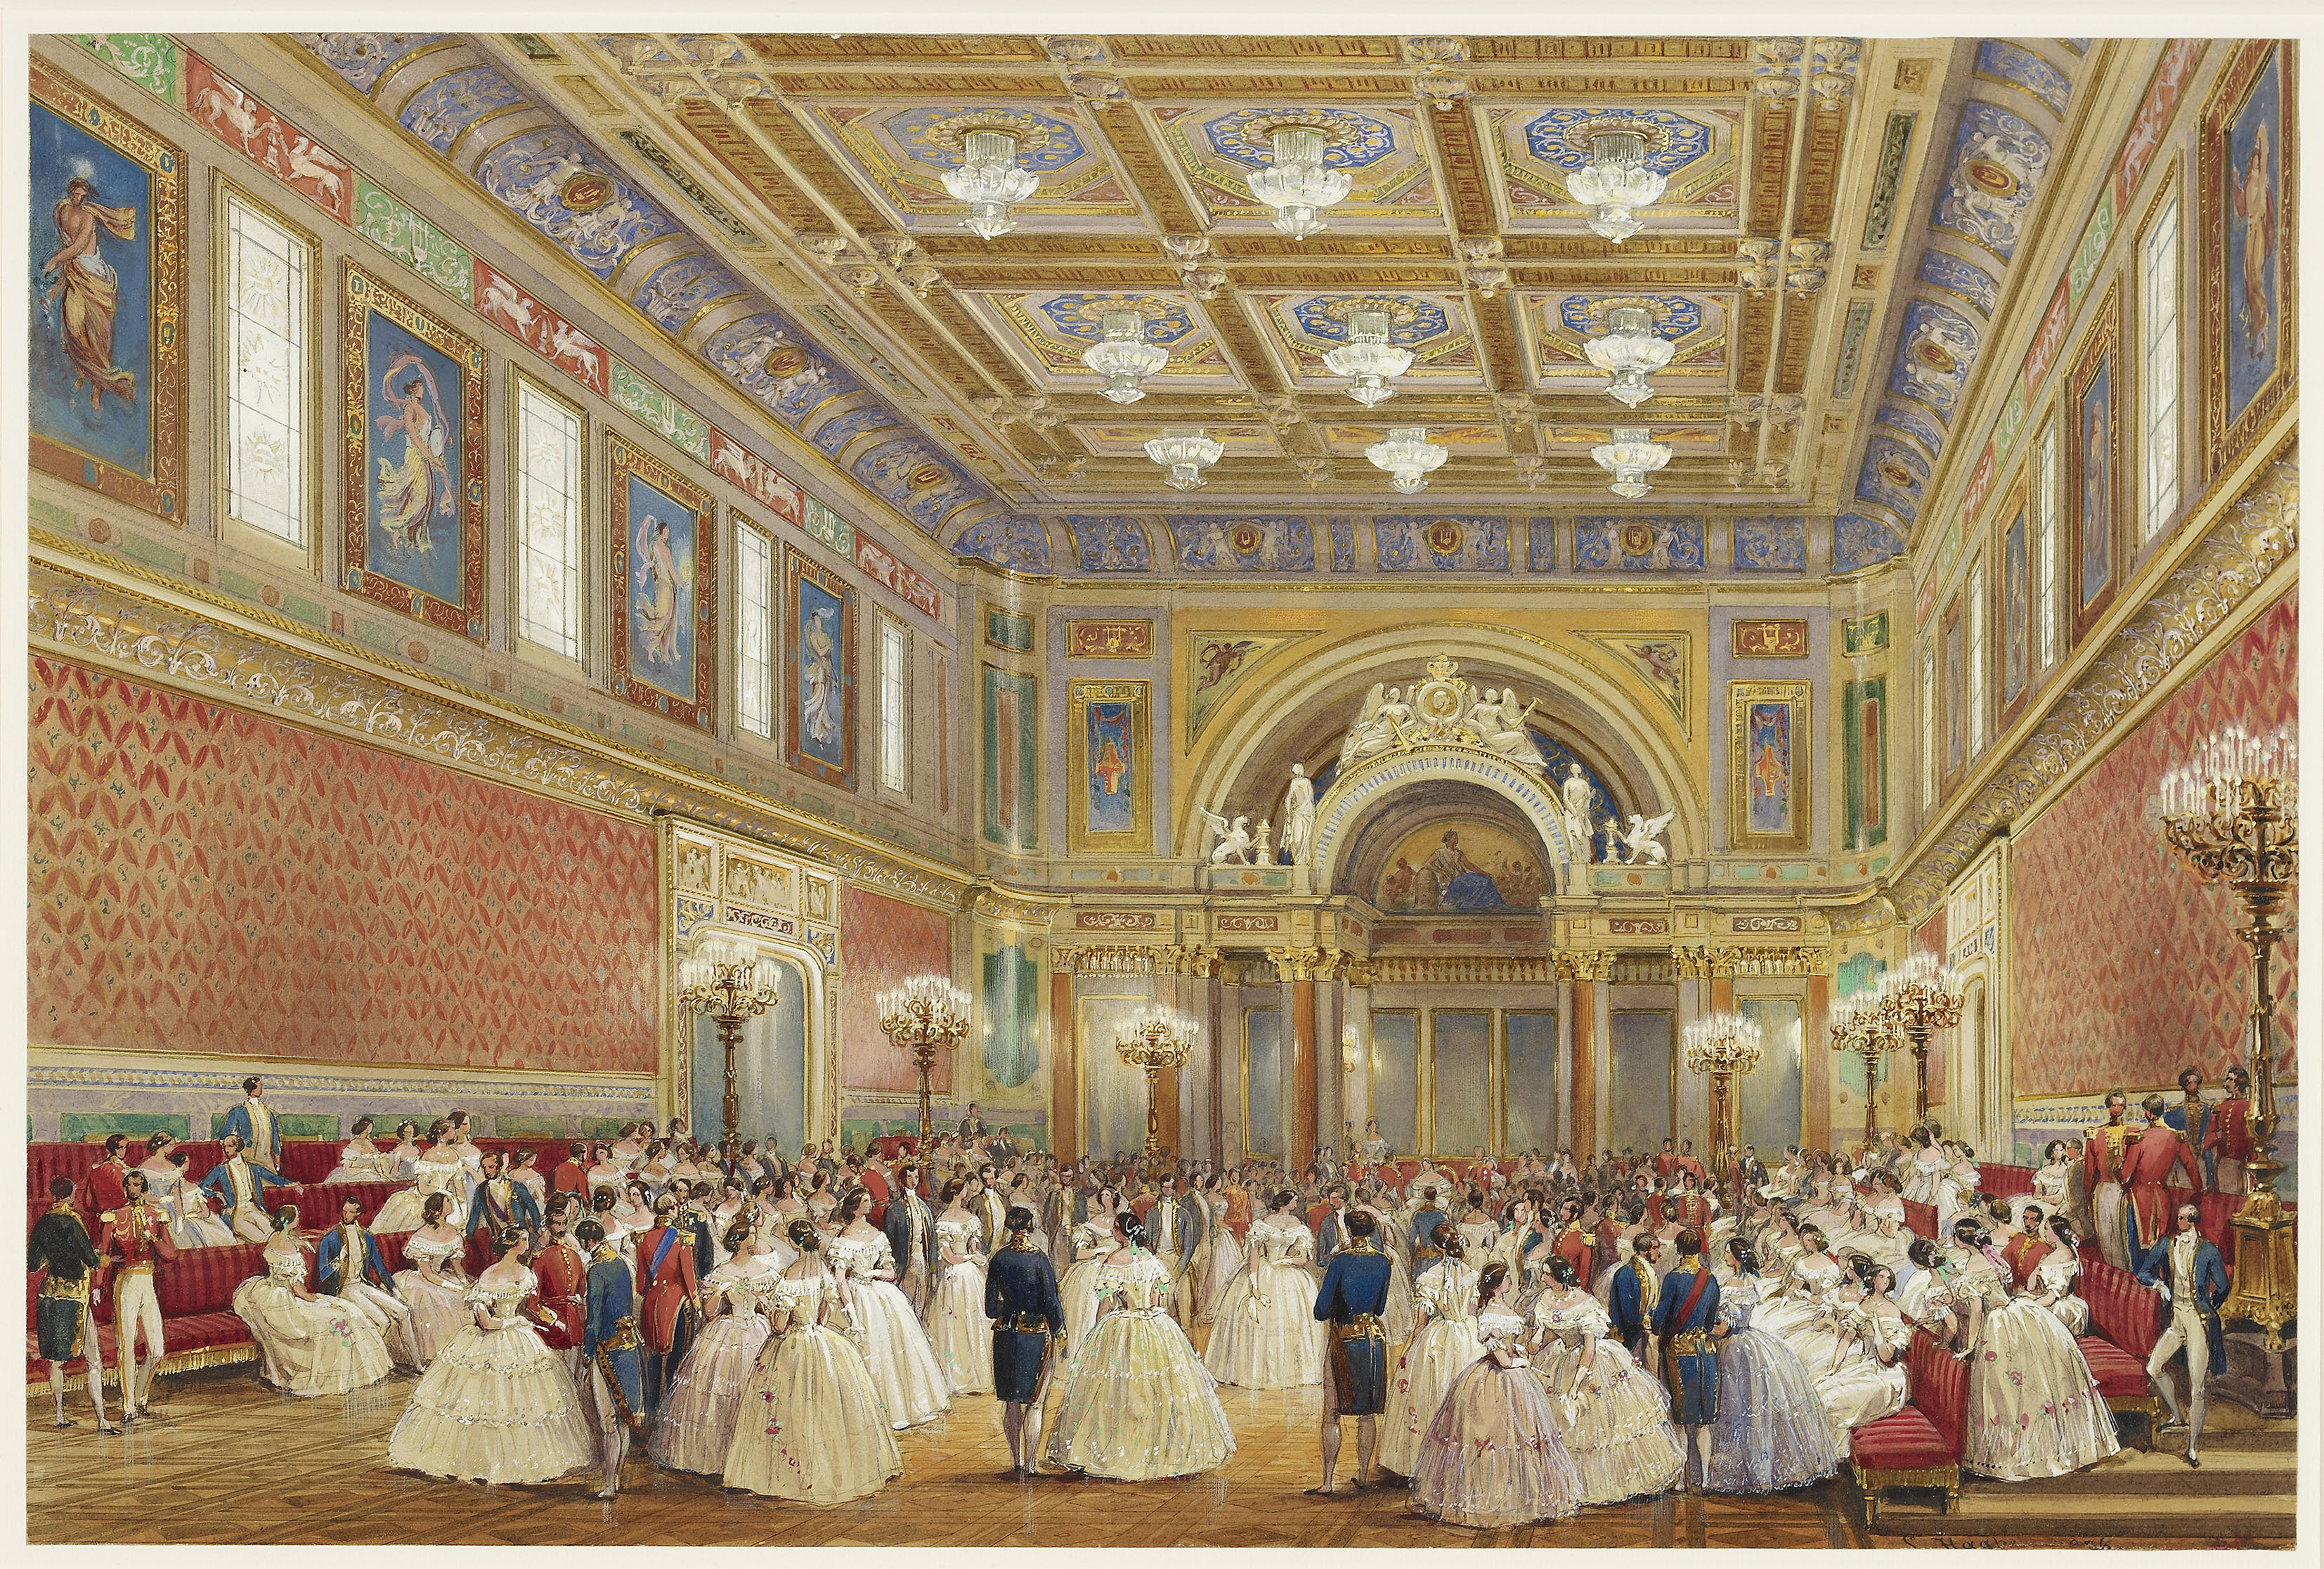 The Ballroom, Buckingham Palace in 1856